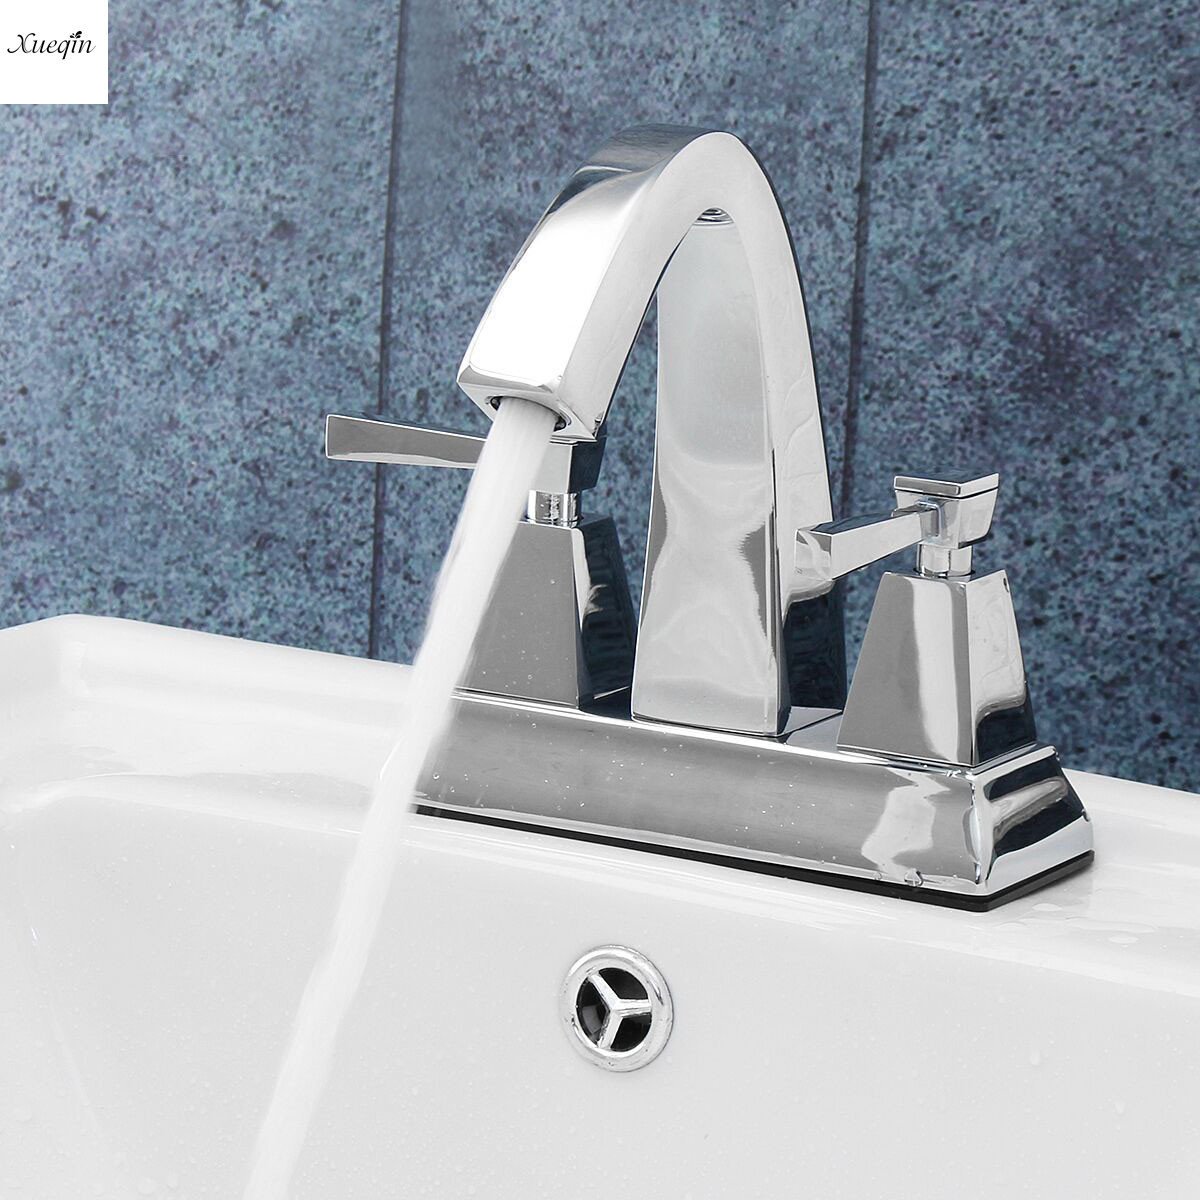 Luxury Brass Chrome Bathroom Basin Faucet Double Handle Two Holes Water Tap Deck Mounted Hot and Cold Water Sink Mixer TapLuxury Brass Chrome Bathroom Basin Faucet Double Handle Two Holes Water Tap Deck Mounted Hot and Cold Water Sink Mixer Tap